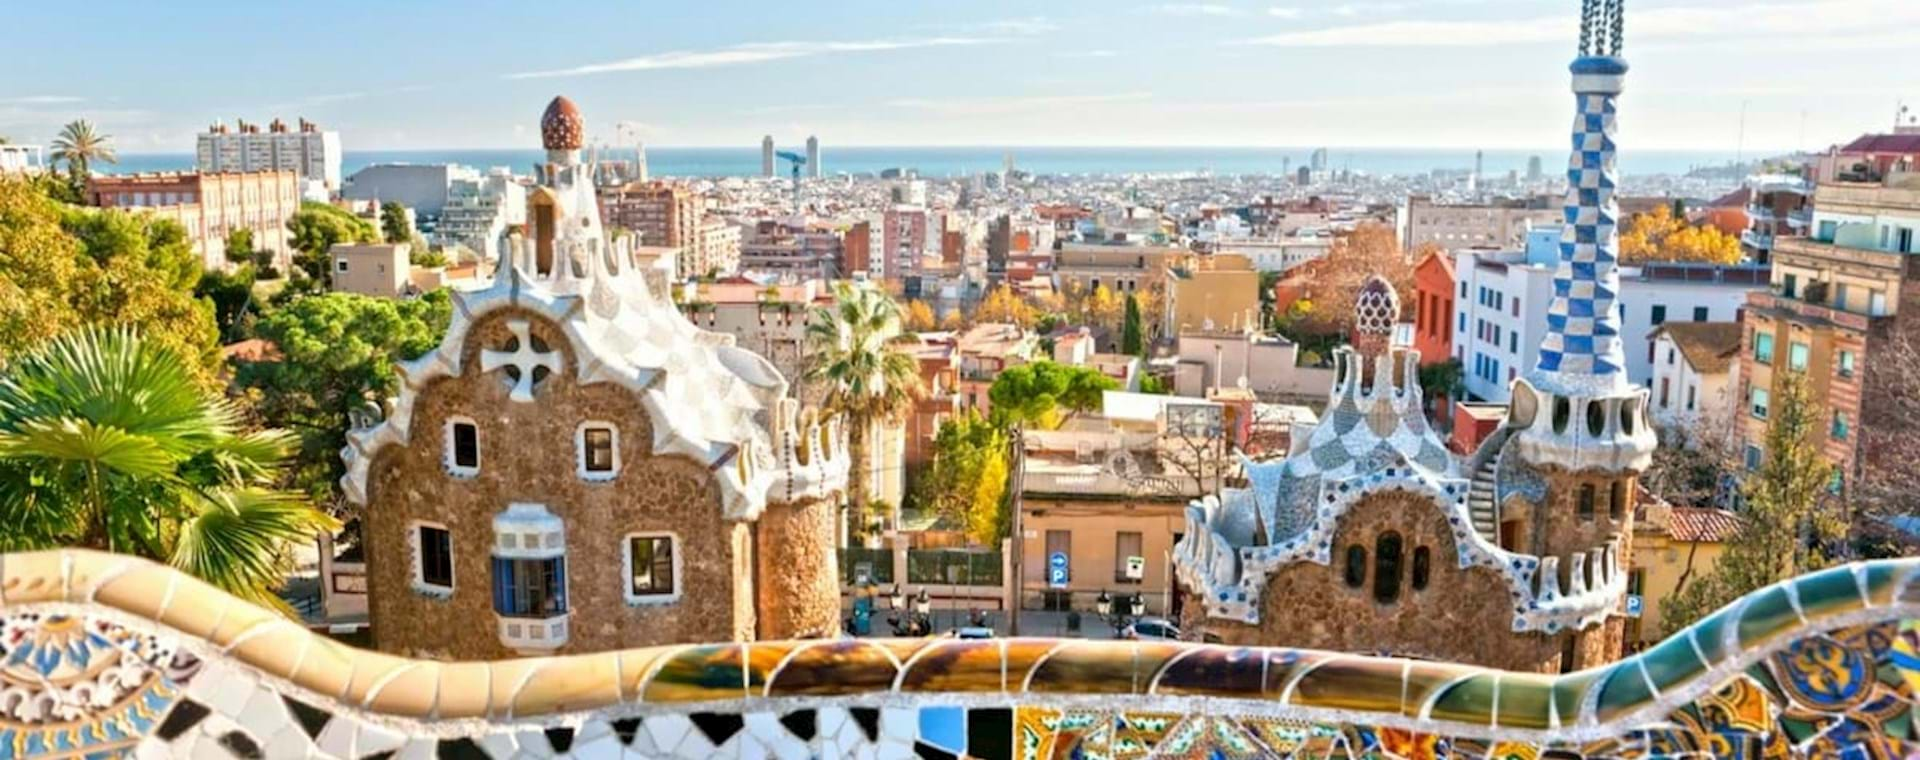 Beautiful view of Barcelona from Parc Guell